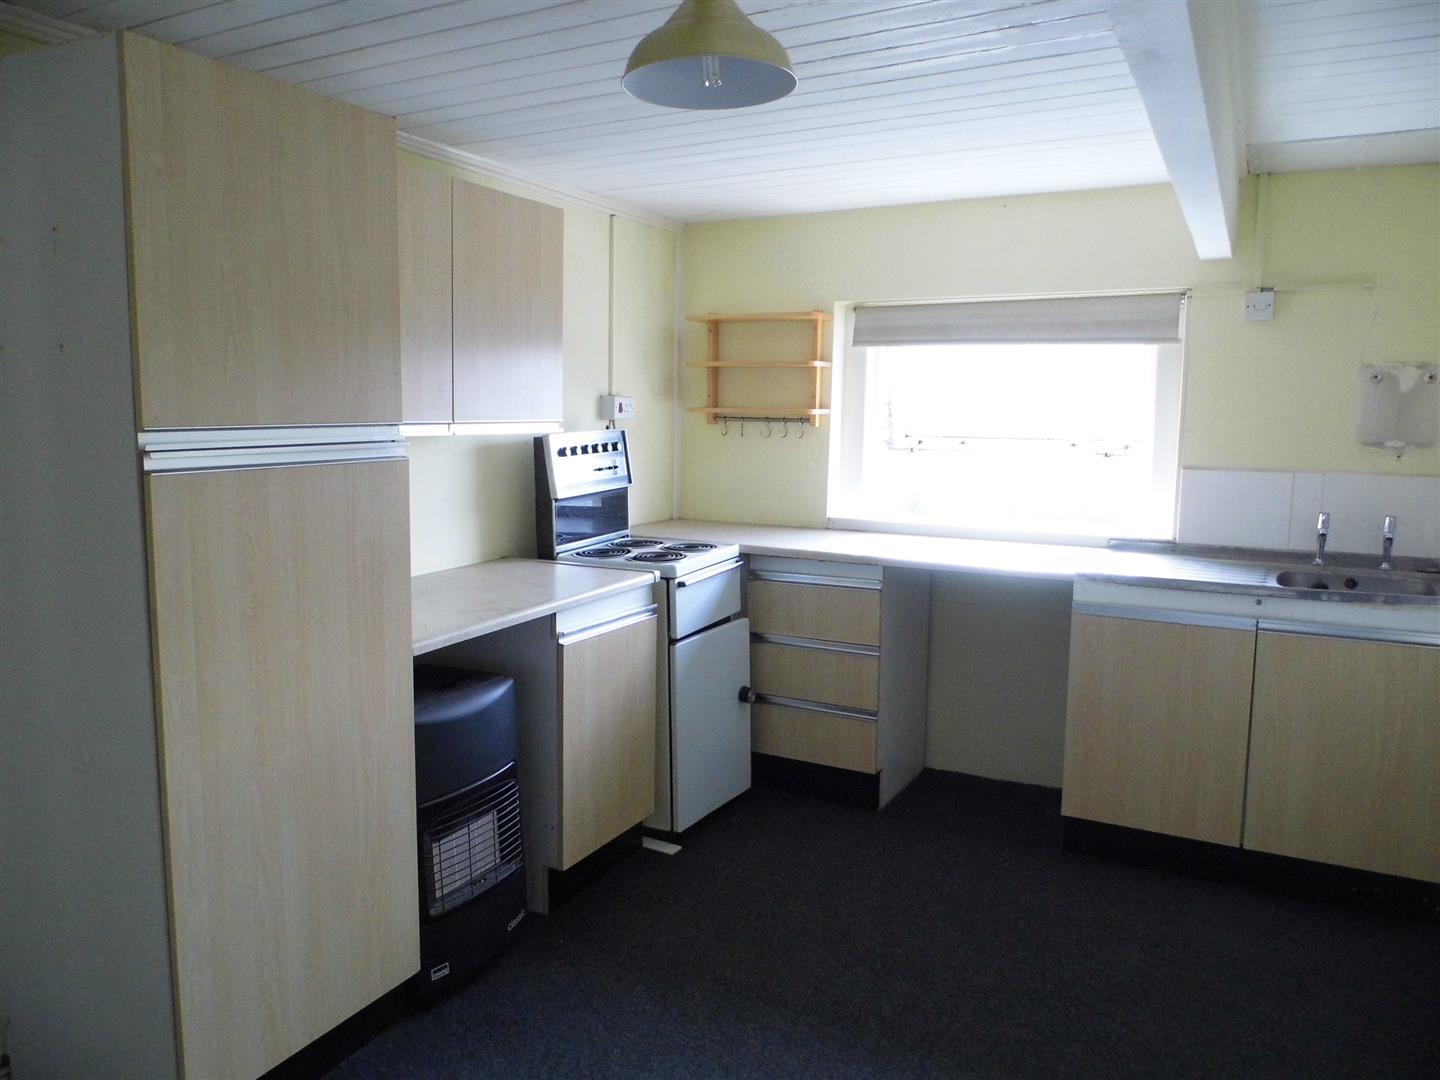 2 bed flat to rent in King's Lynn, PE30 1NN, PE30